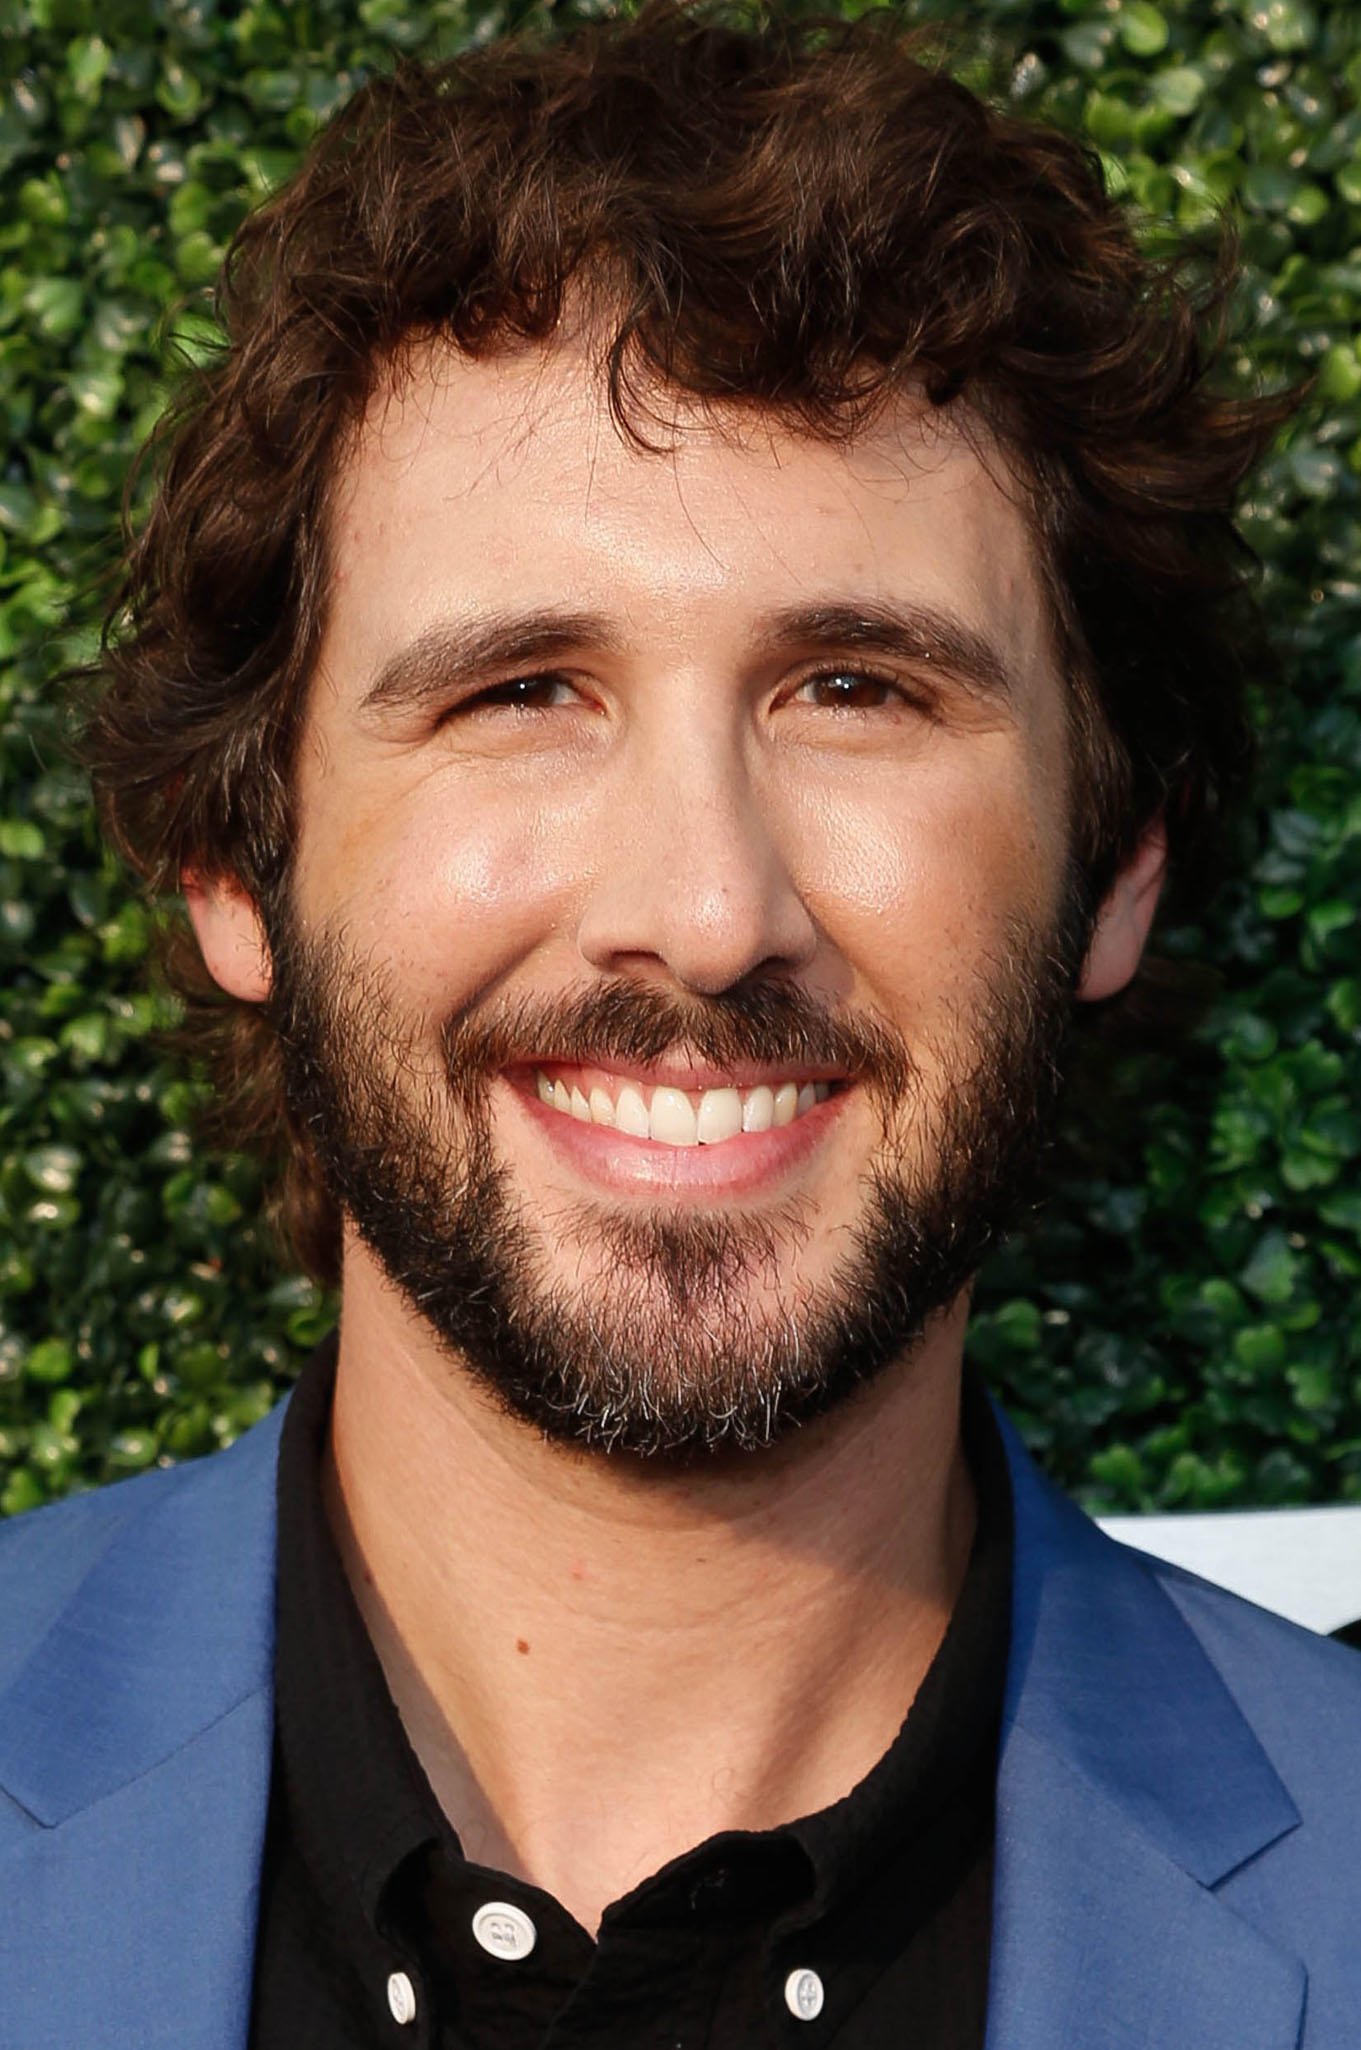 Josh Groban at the 15th Annual USTA Opening Night Gala in New York City.